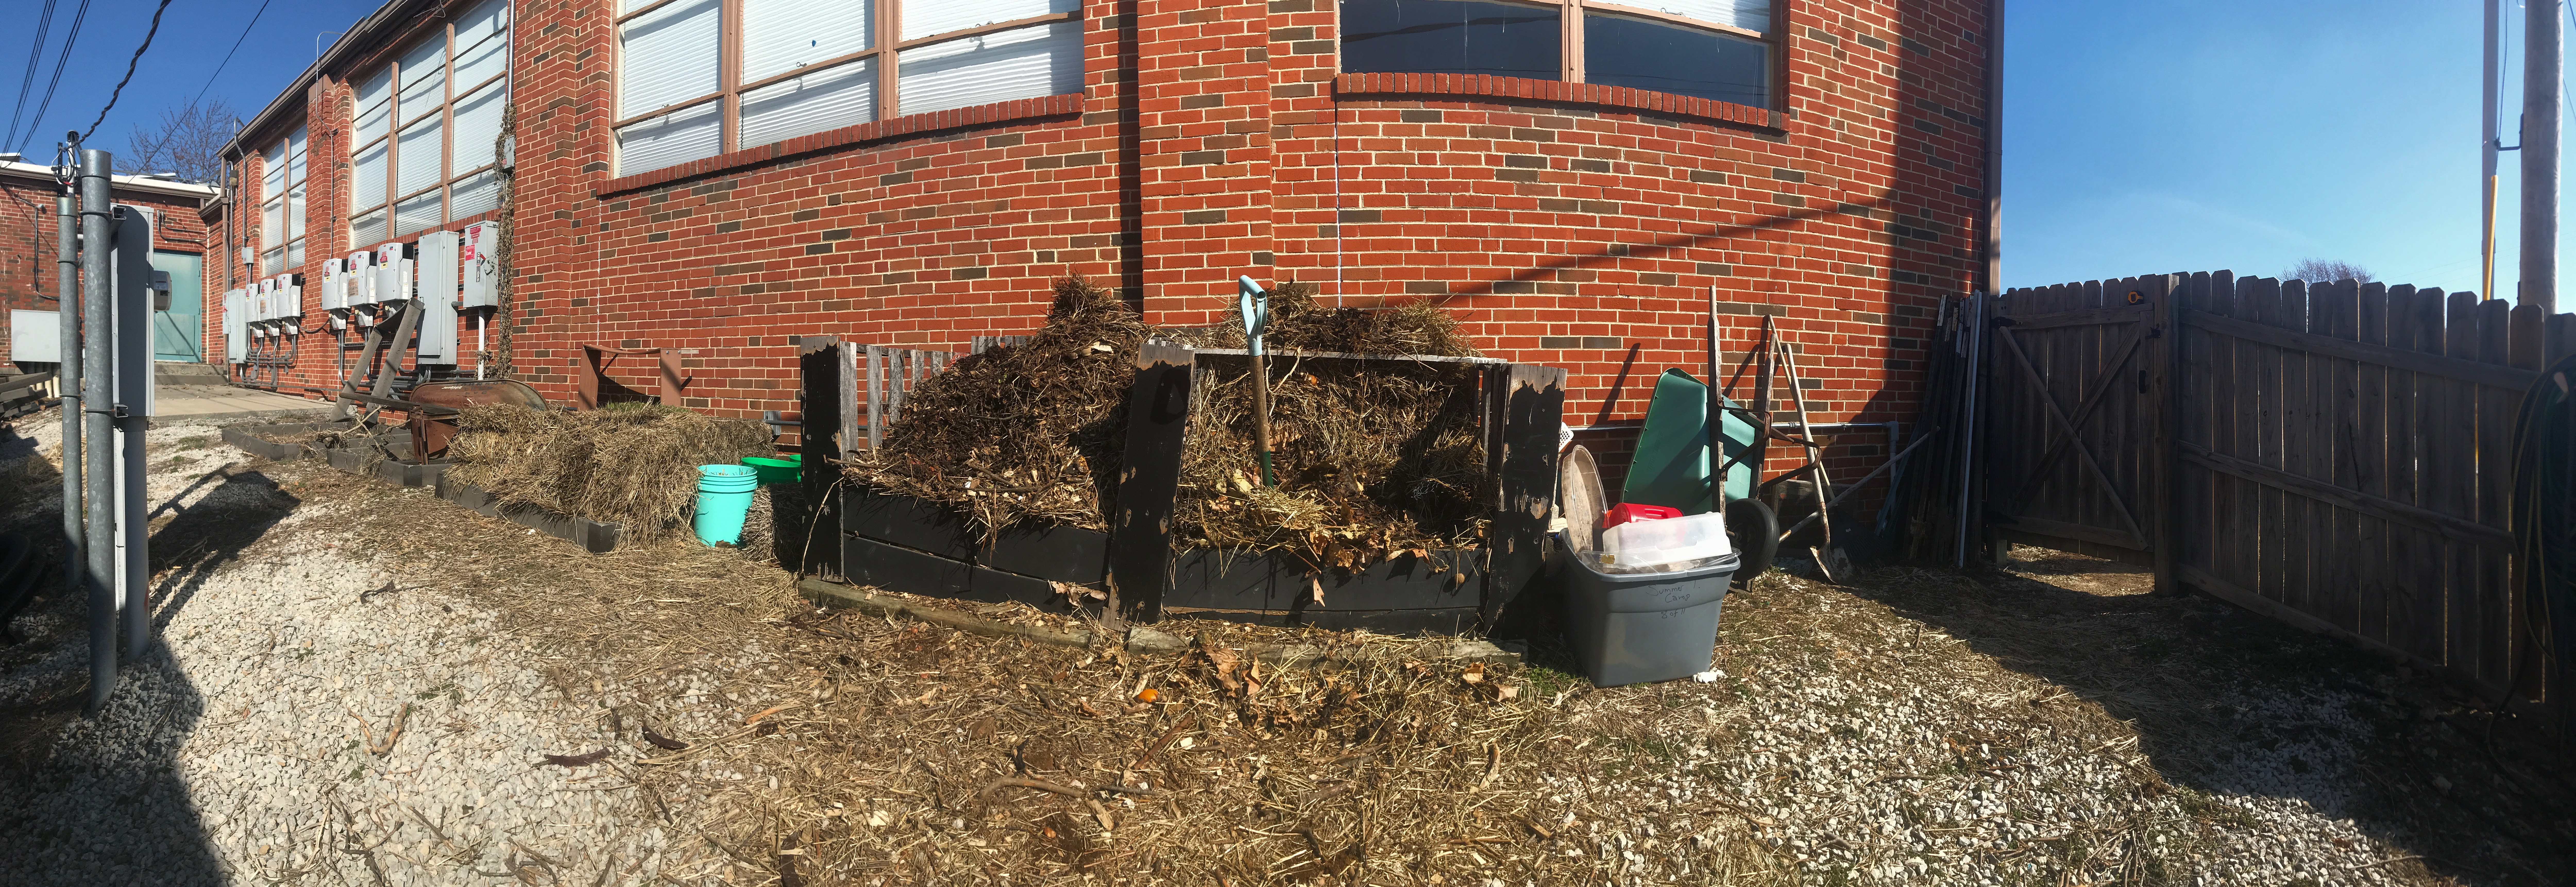 Current Oakhill Compost - Main Campus